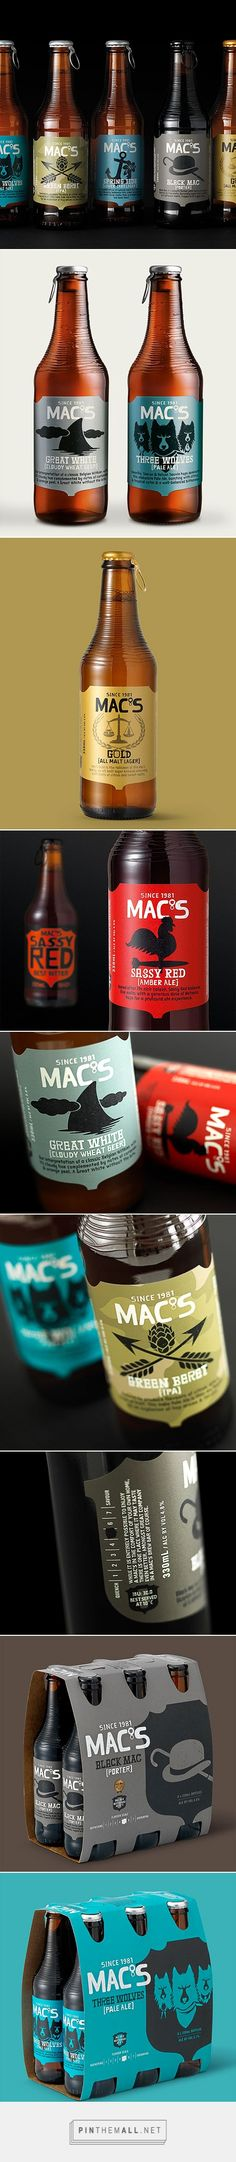 Mac's Update | Oh Beautiful Beer - created via http://pinthemall.net